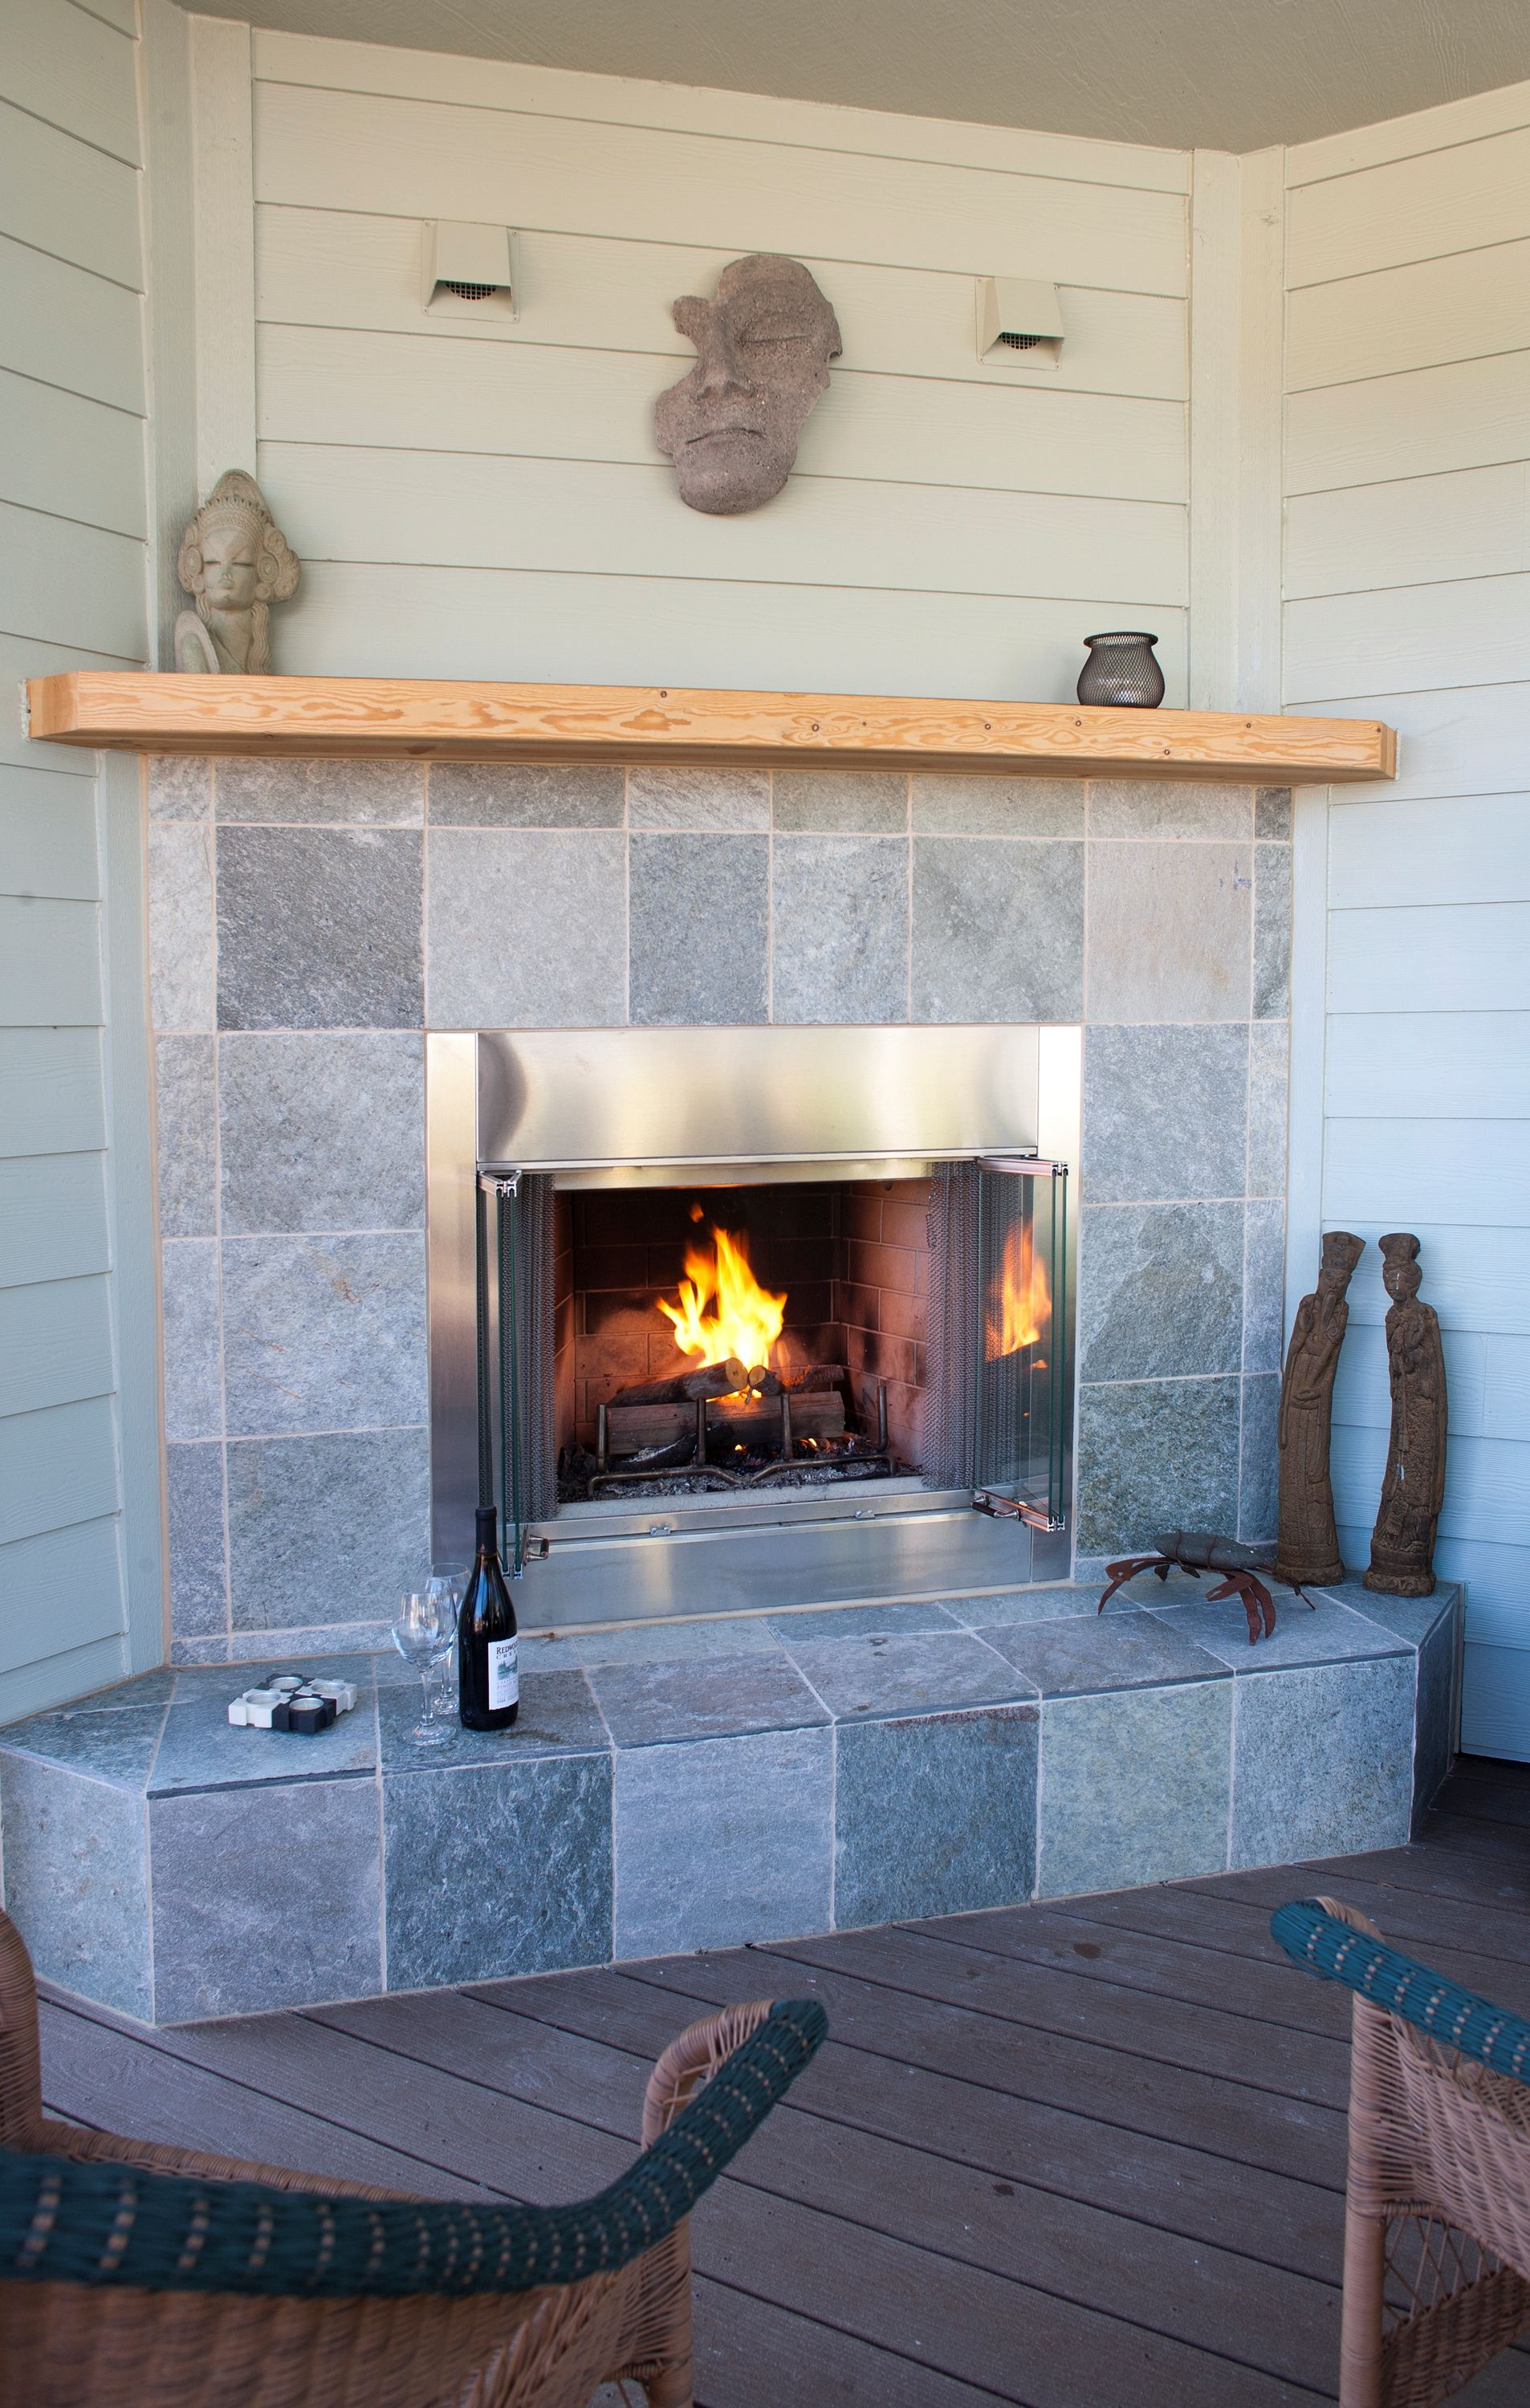 Enjoy a fire on your porch!  Estes Builders designs and builds new homes in Port Angeles, Sequim, Port Townsend, Kingston, Hansville, Poulsbo, Bainbridge Island, Bremerton, Silverdale, Port Orchard and surrounding Clallam and Kitsap Peninsula neighborhoods.